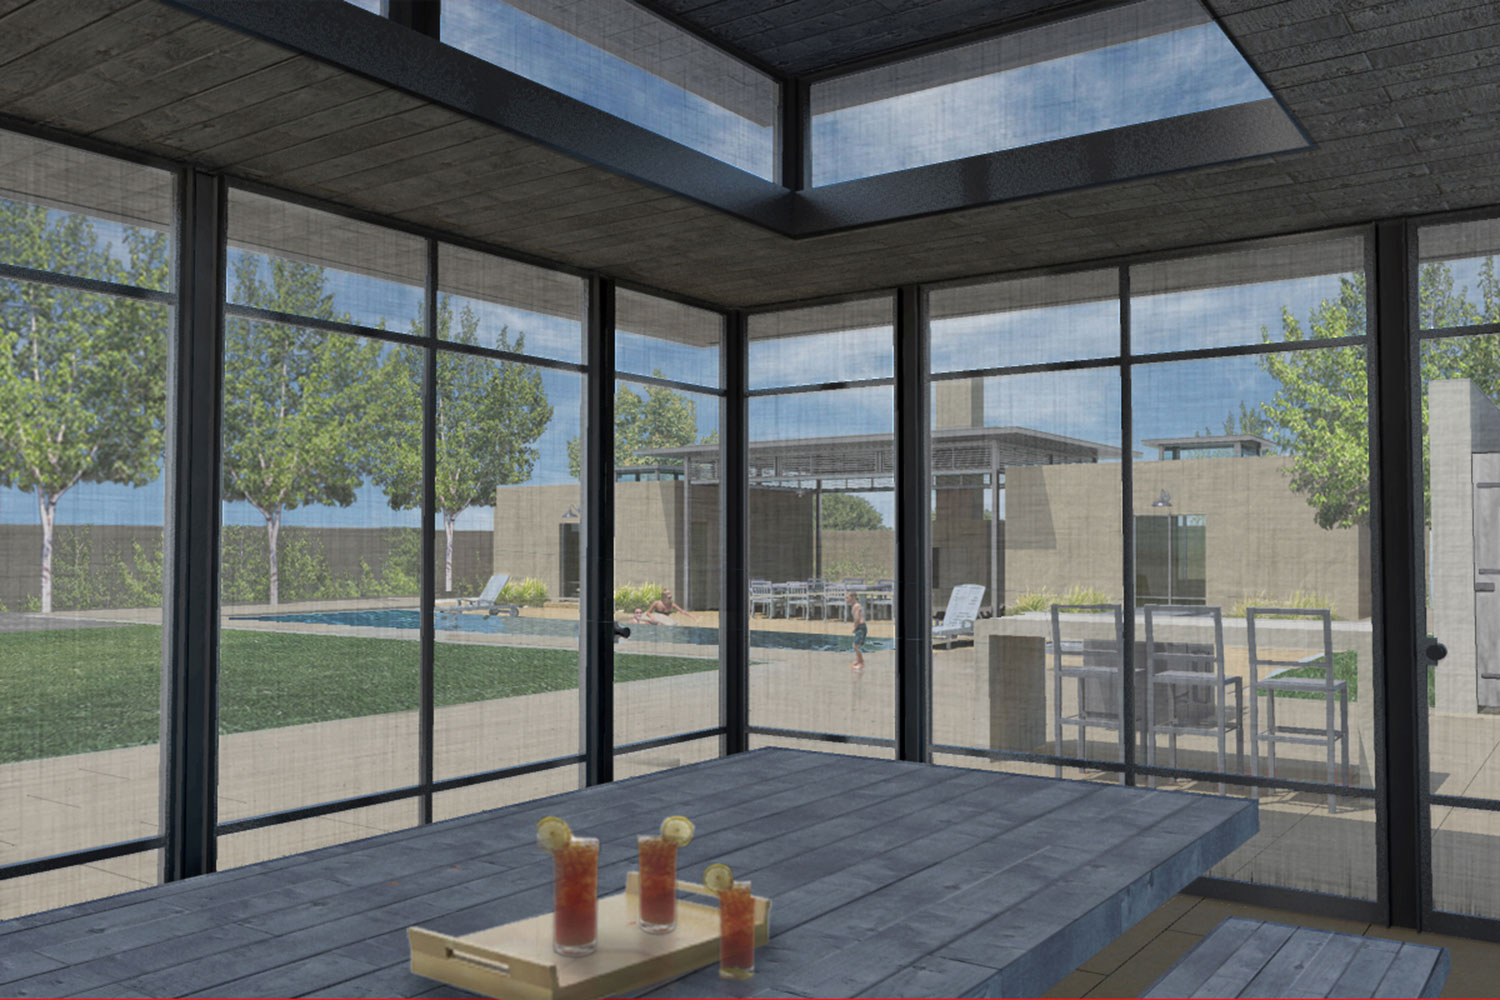 Location: Marfa, Texas   Project Type: New Residence  Project currently in progress